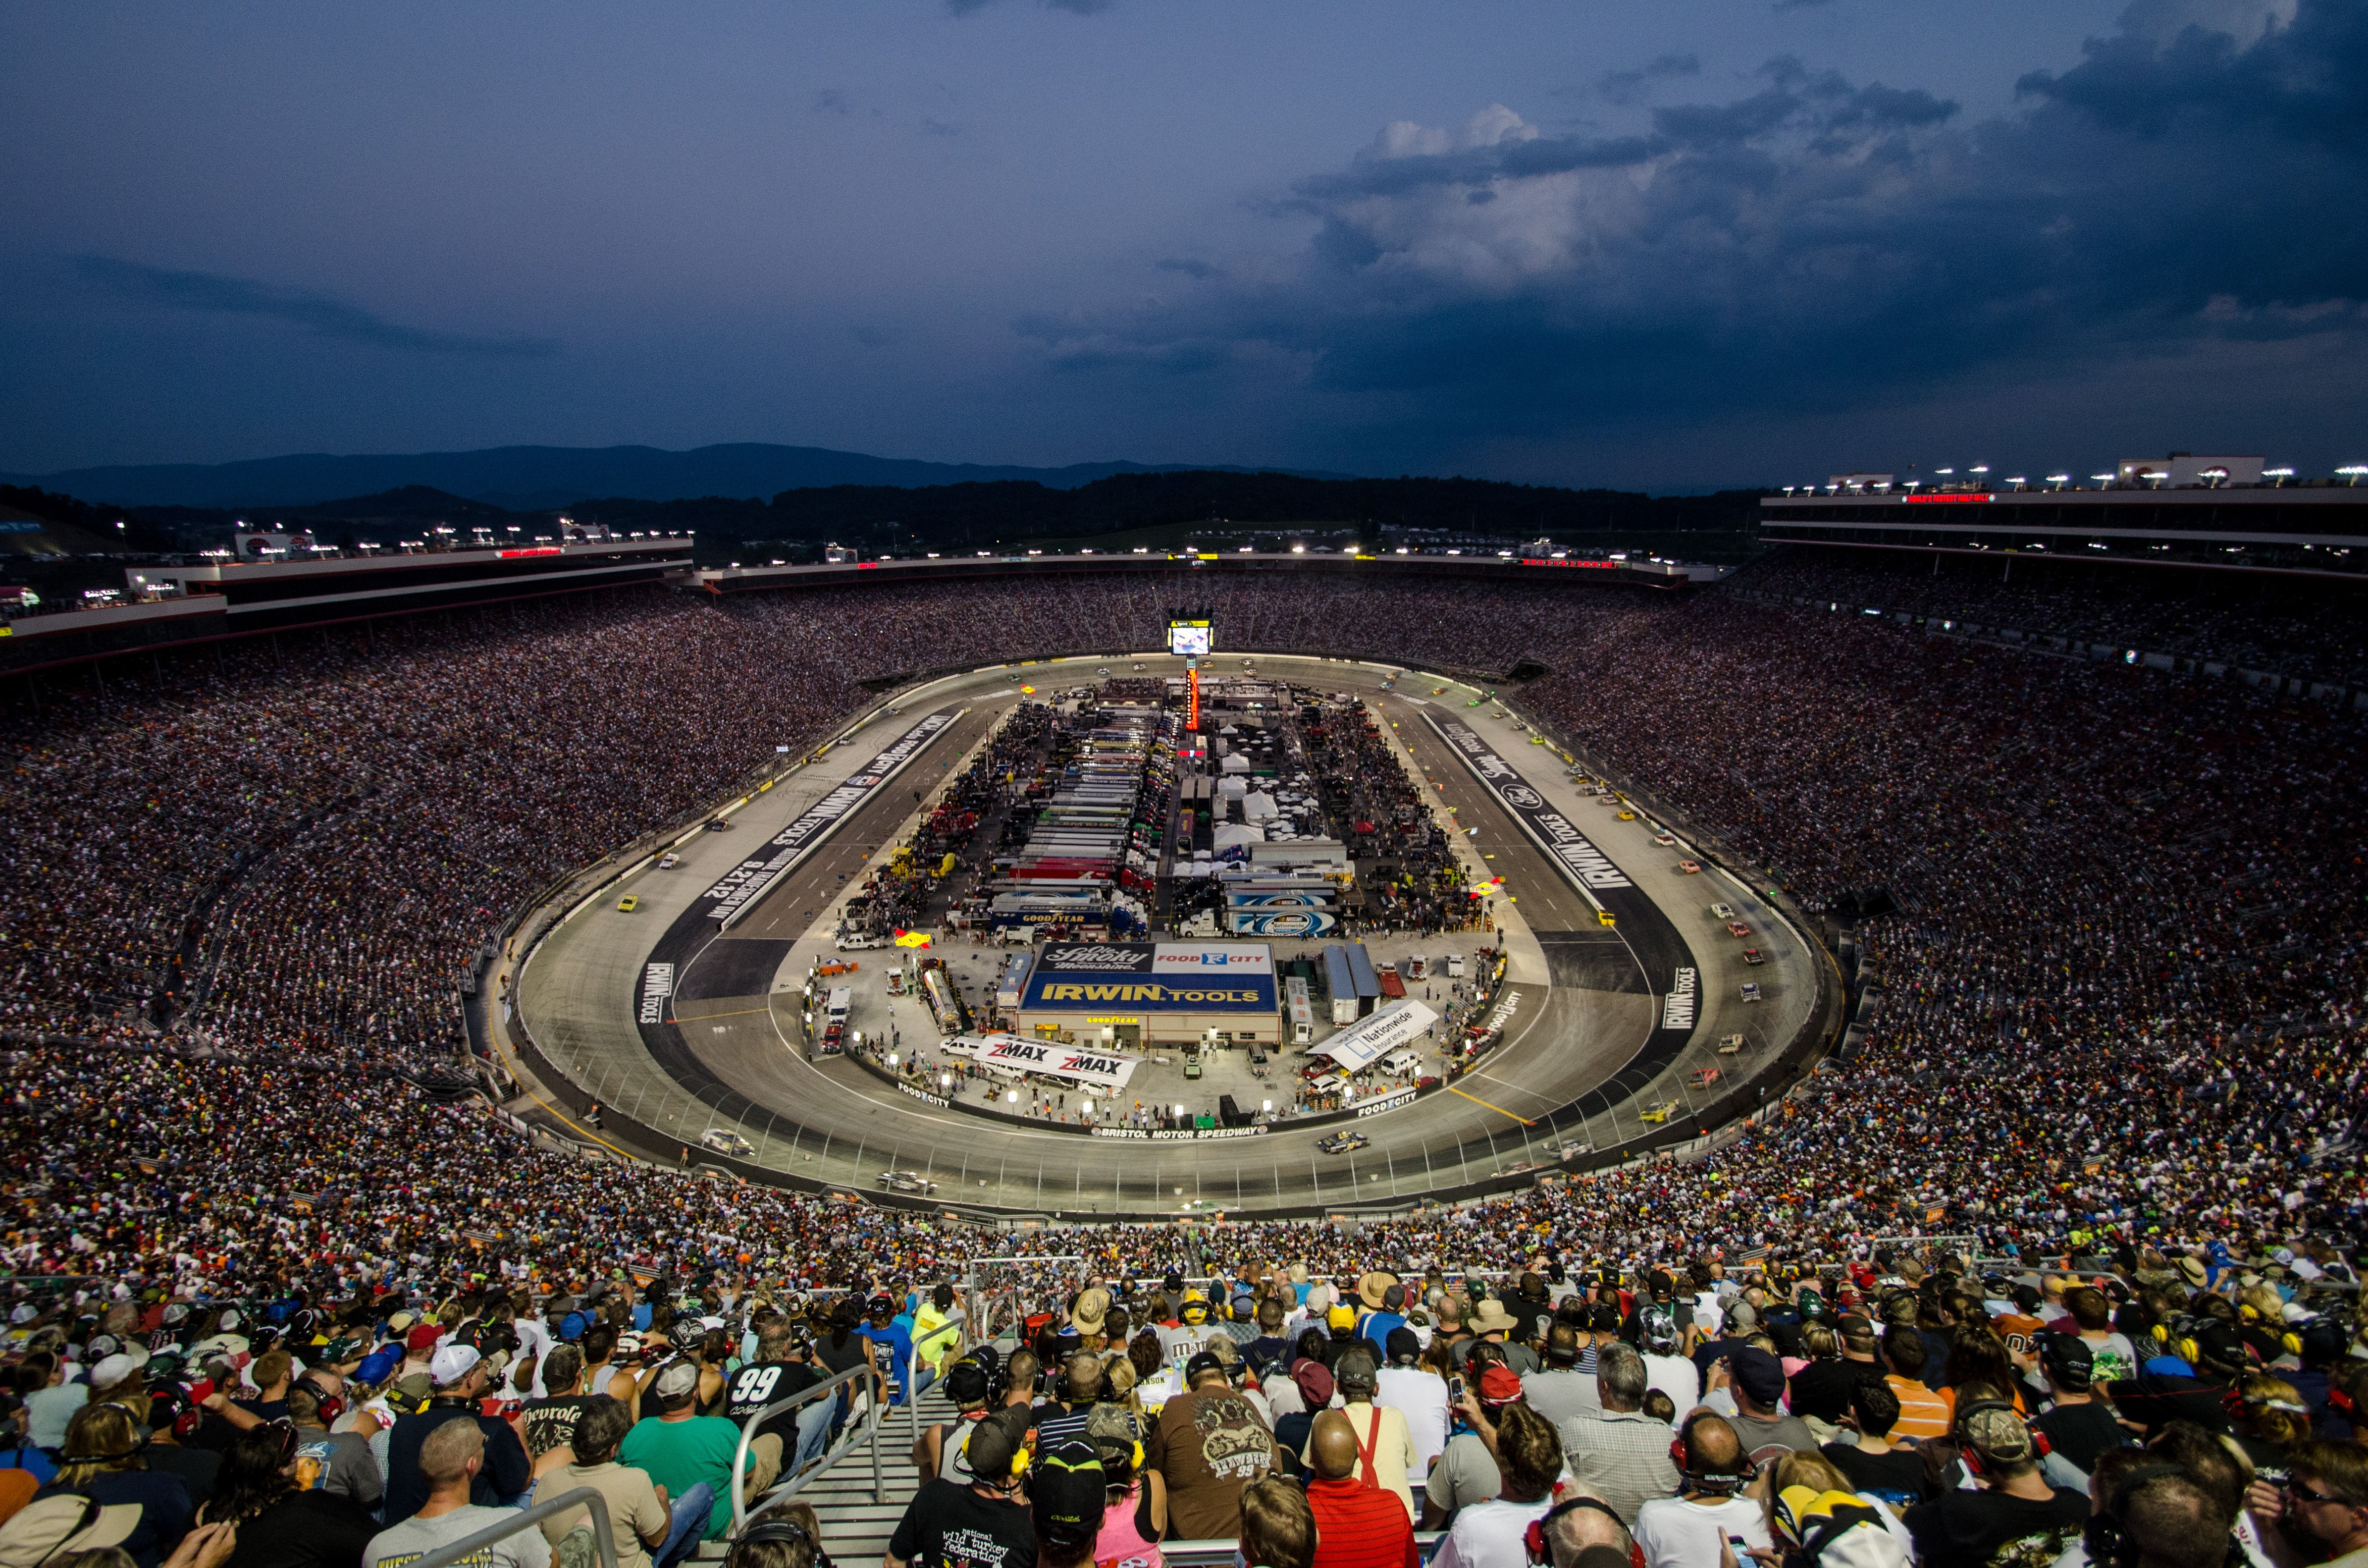 There Is No Better Place To Watch Nascar Sprint Cup Action Than Under The Lights At Bristol Nascar Itsbristolbaby Bristol Motor Speedway Nascar Race Tracks Nascar Racing